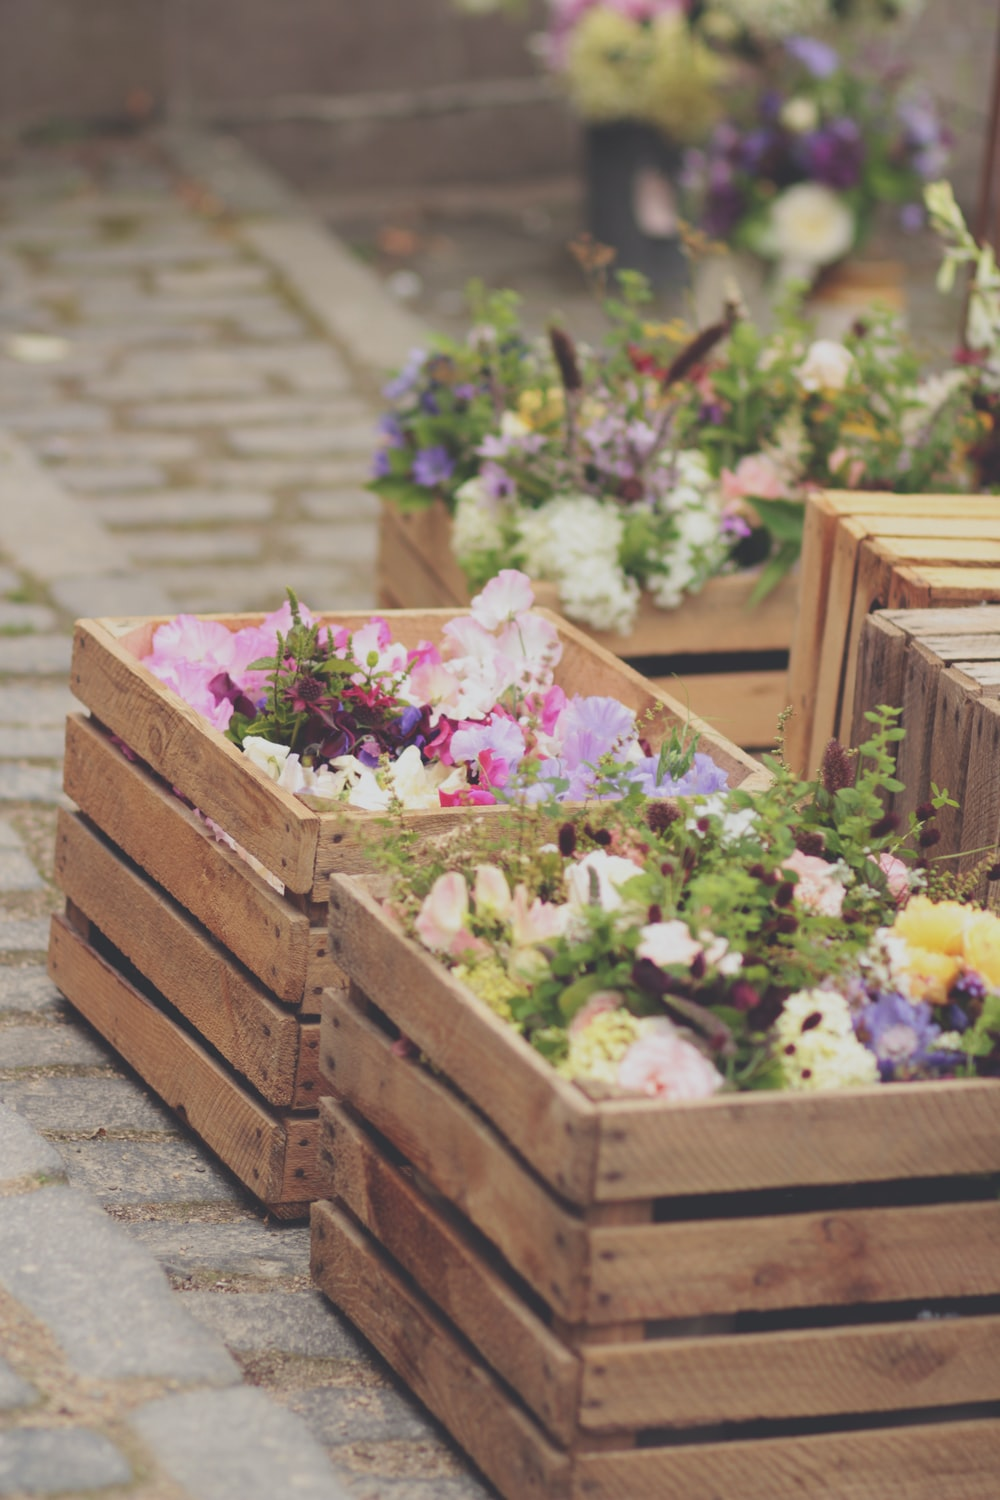 pink and white flowers on brown wooden crate